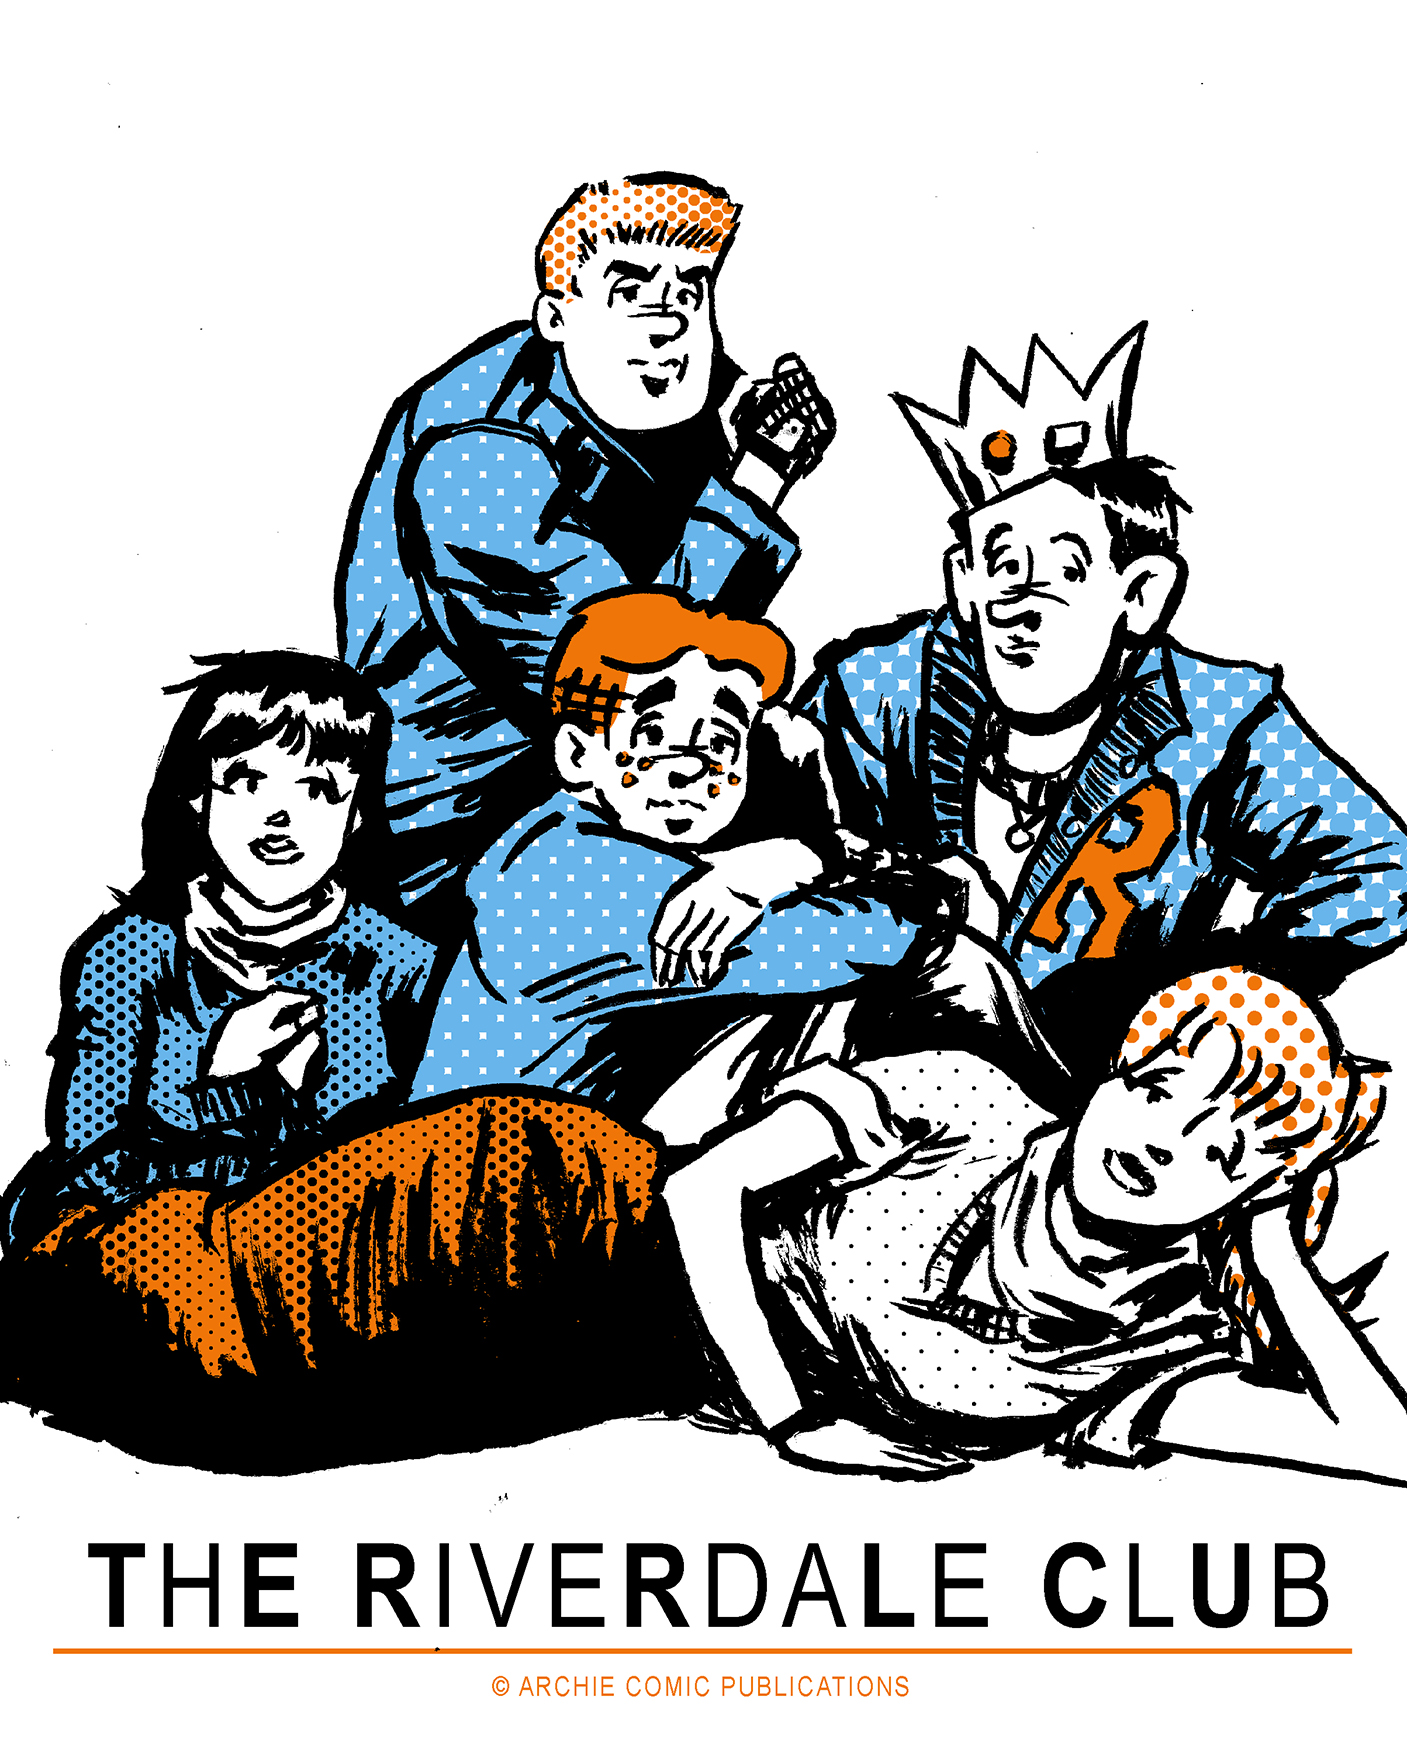 The Riverdale Club